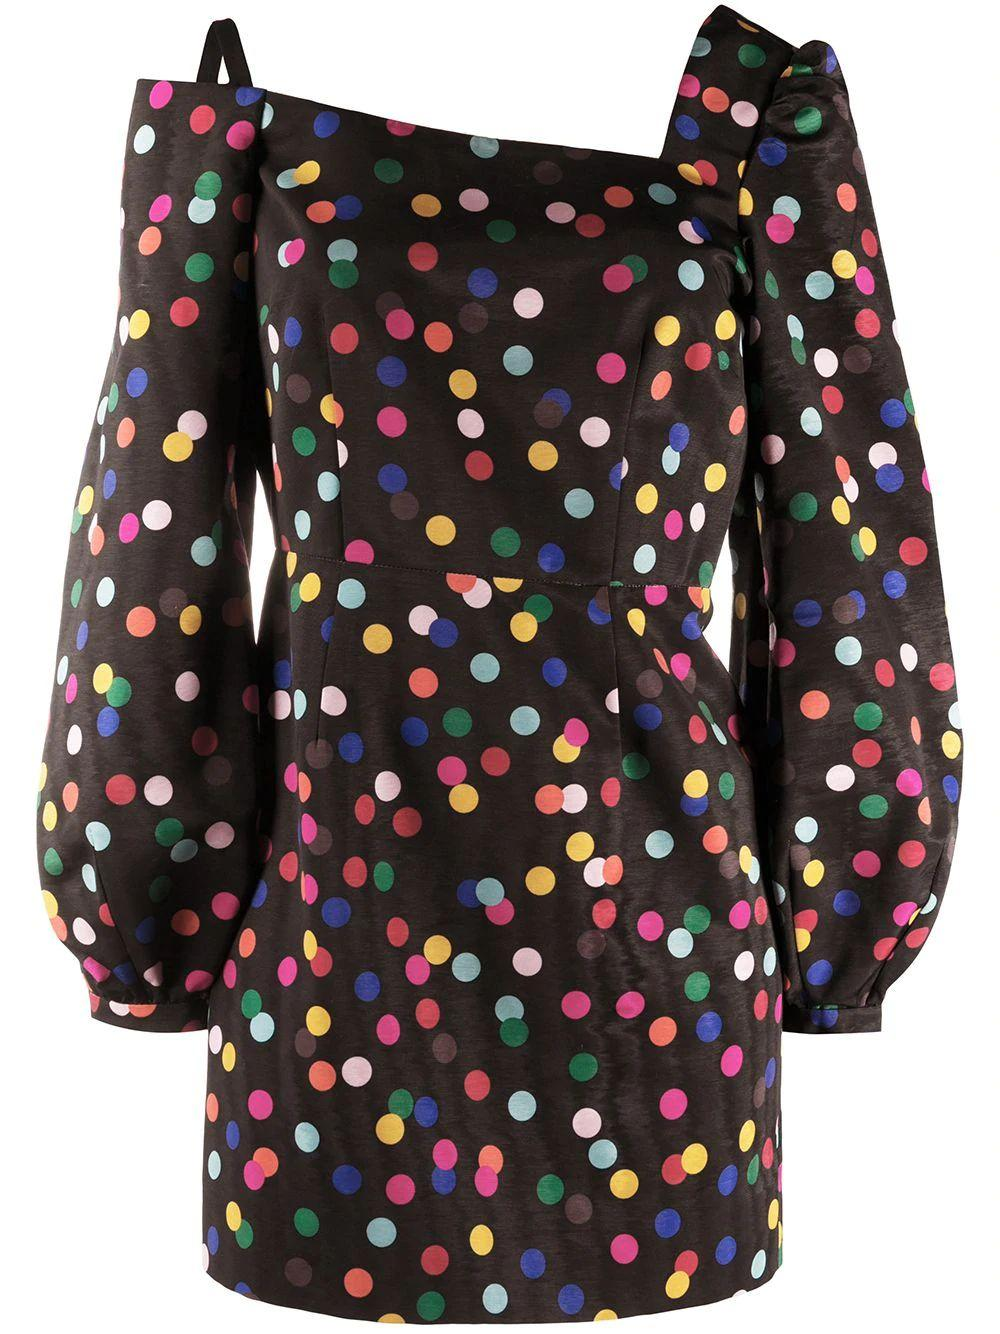 Debbie Moire Polka Dot Party Dress